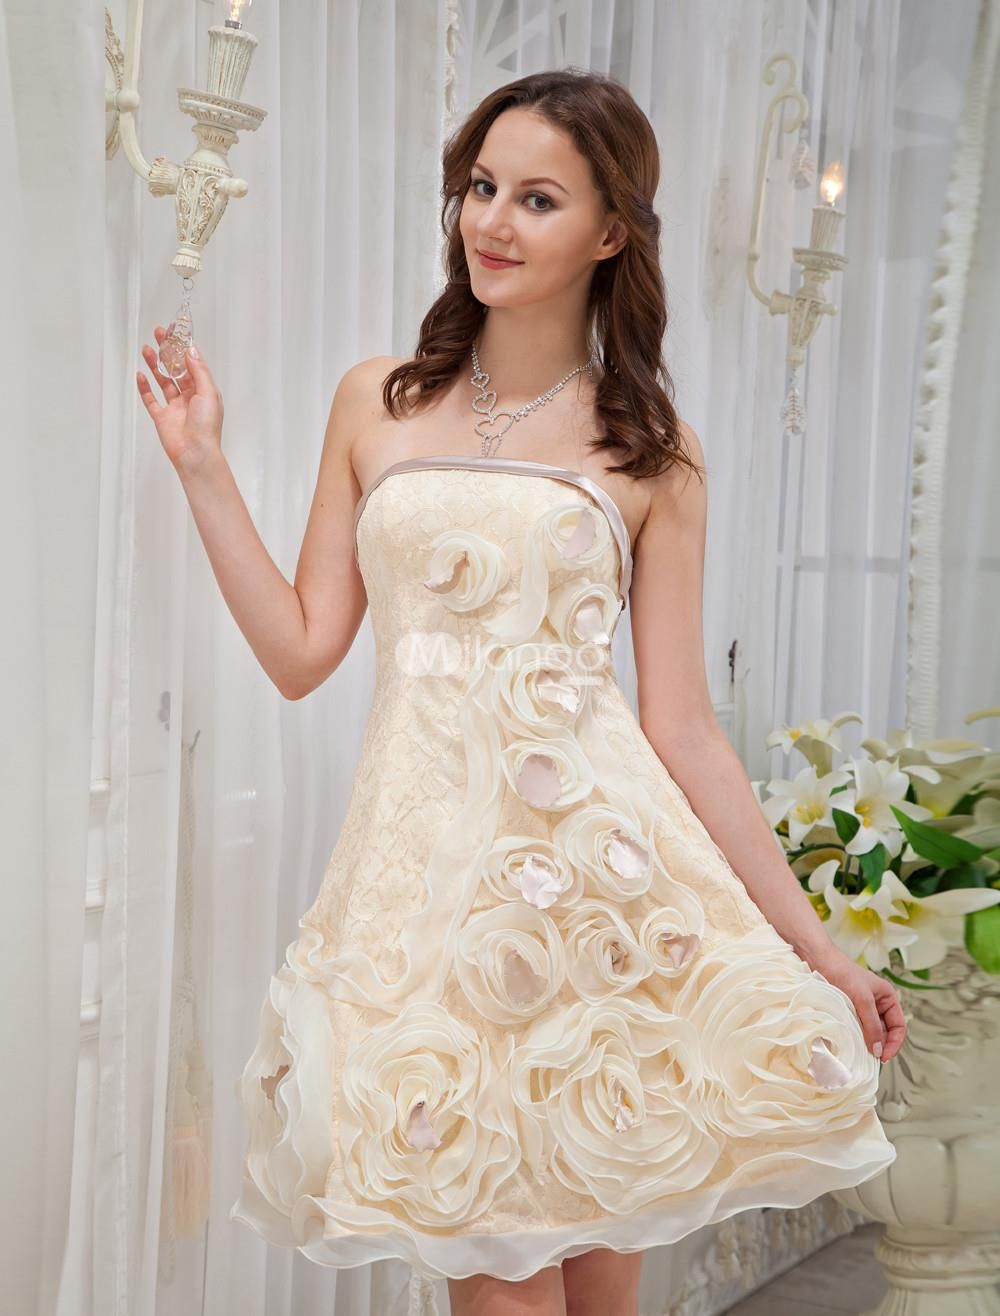 Champagne Knee Length Lace Womans Homecoming Dress. See More Colorful Dresses at http://www.ourgreatshop.com/Colorful-Dresses-C983.aspx